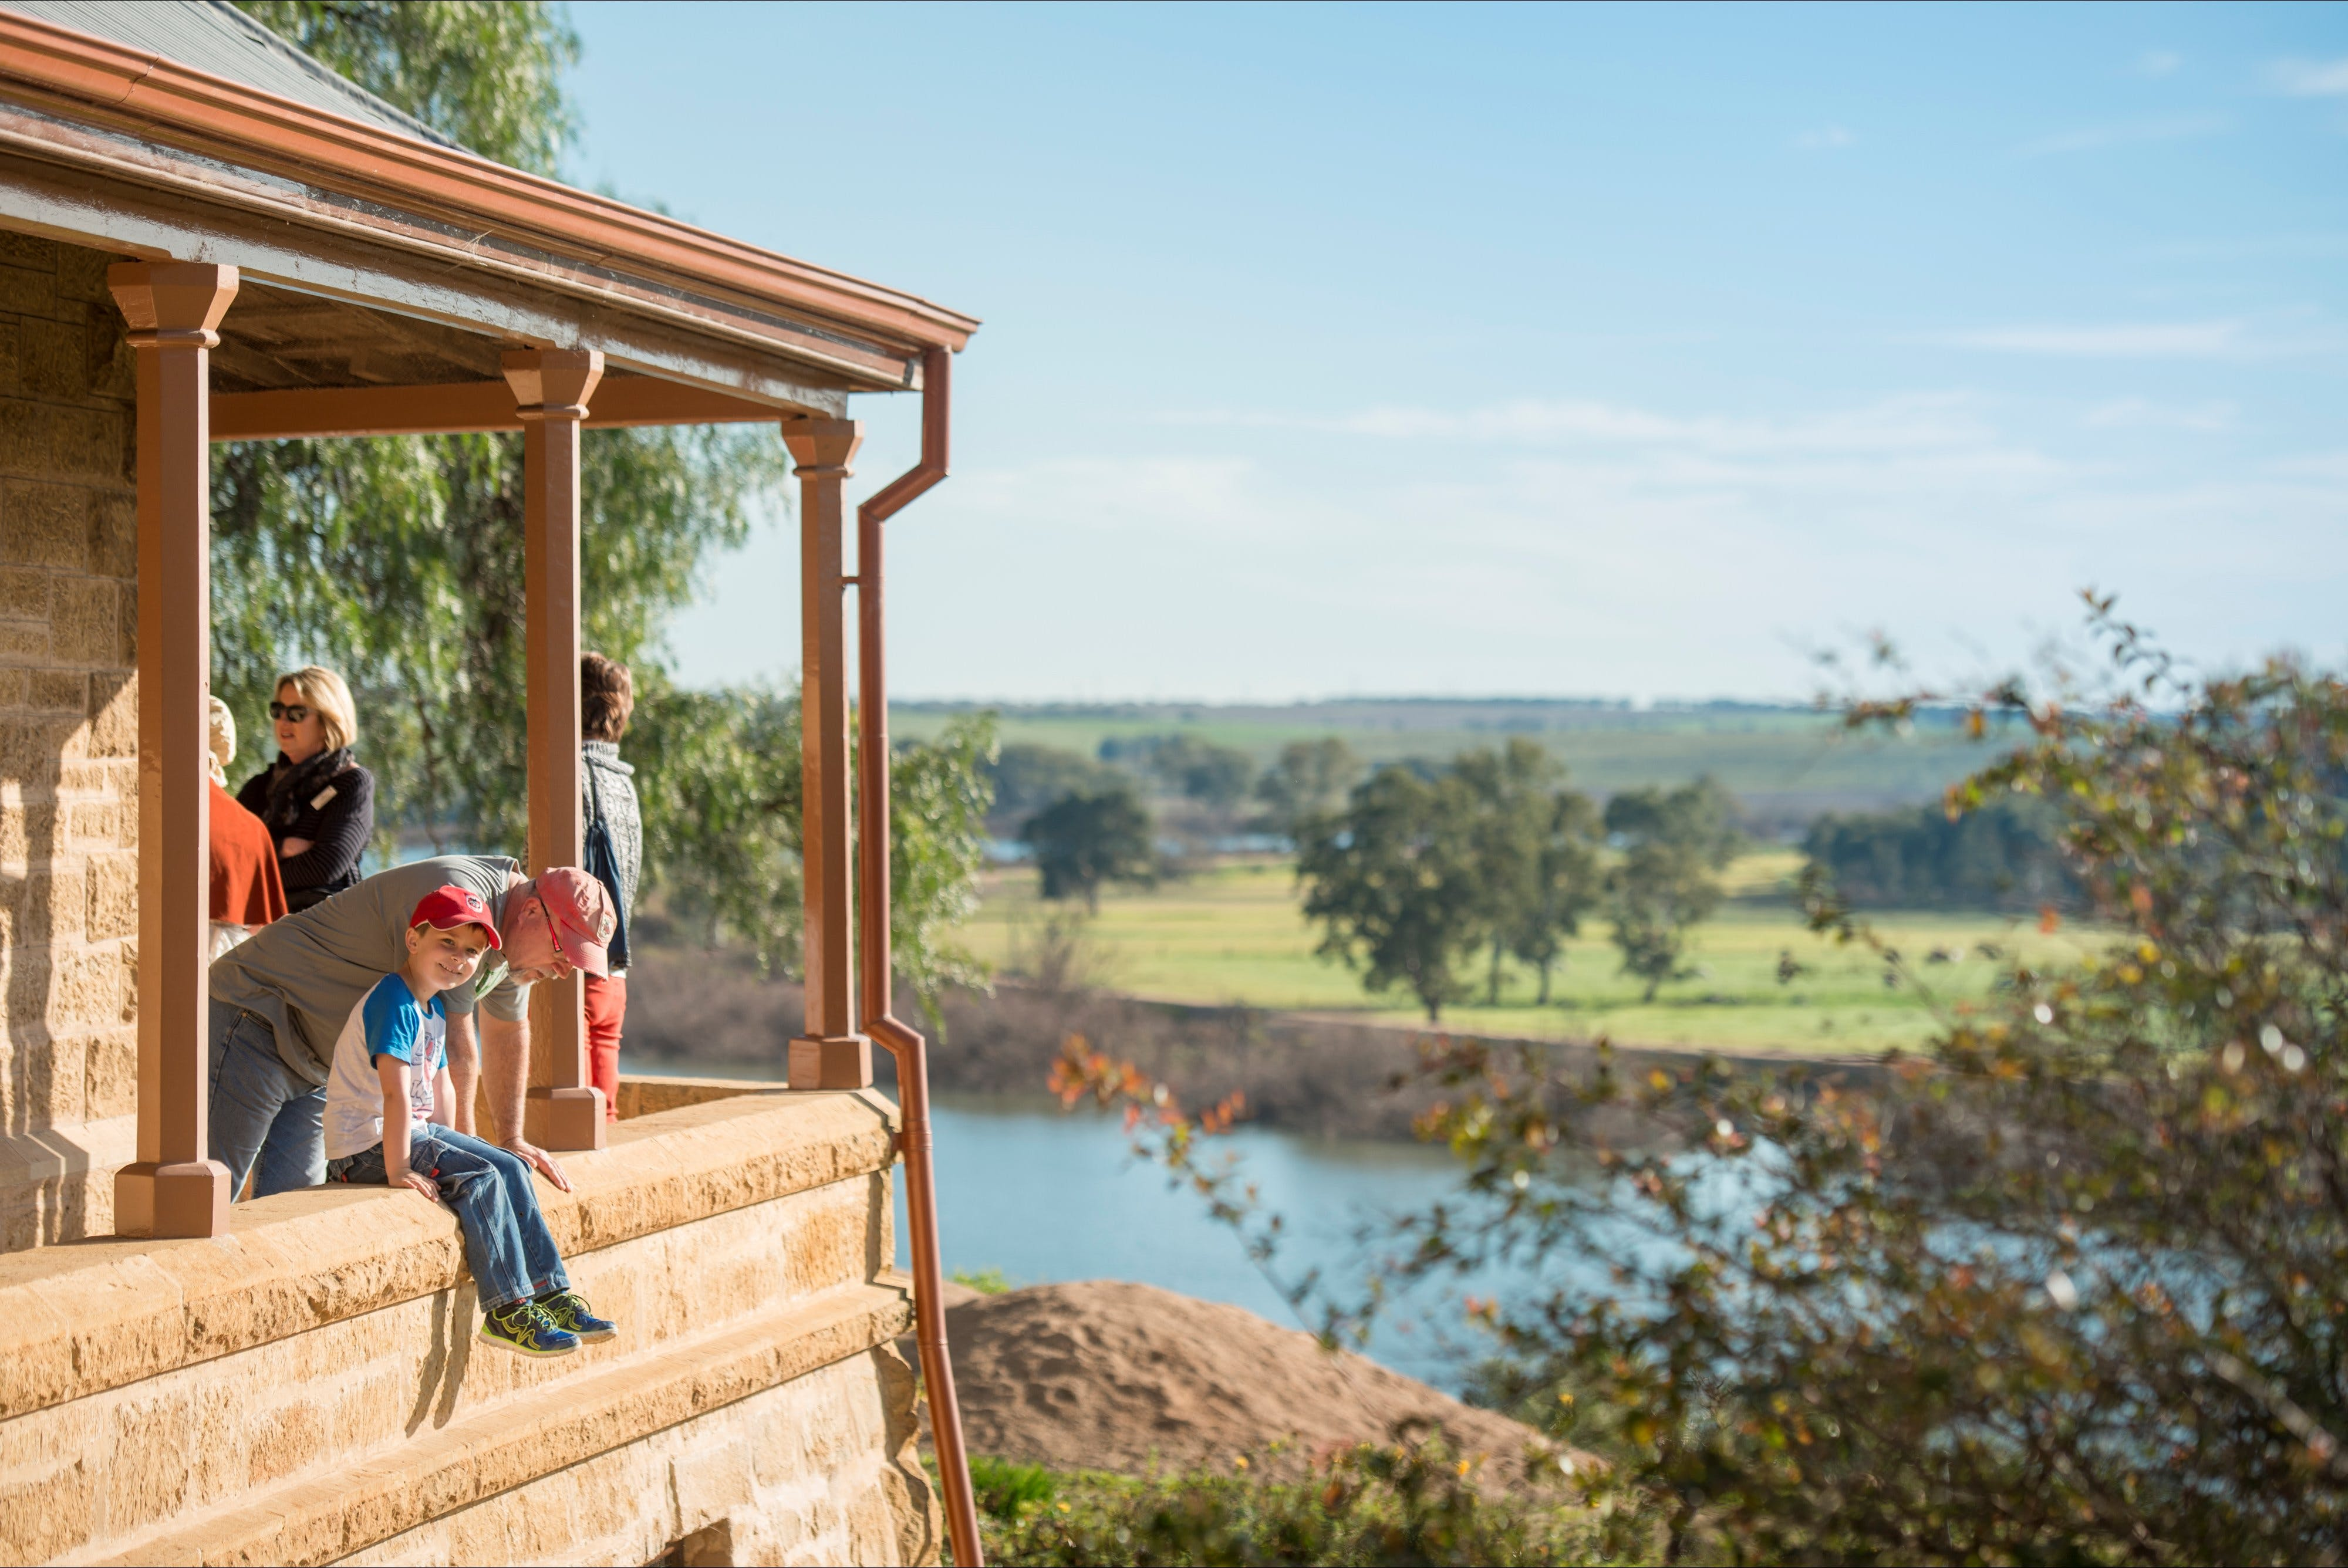 The Murray Bridge Discovery Trail